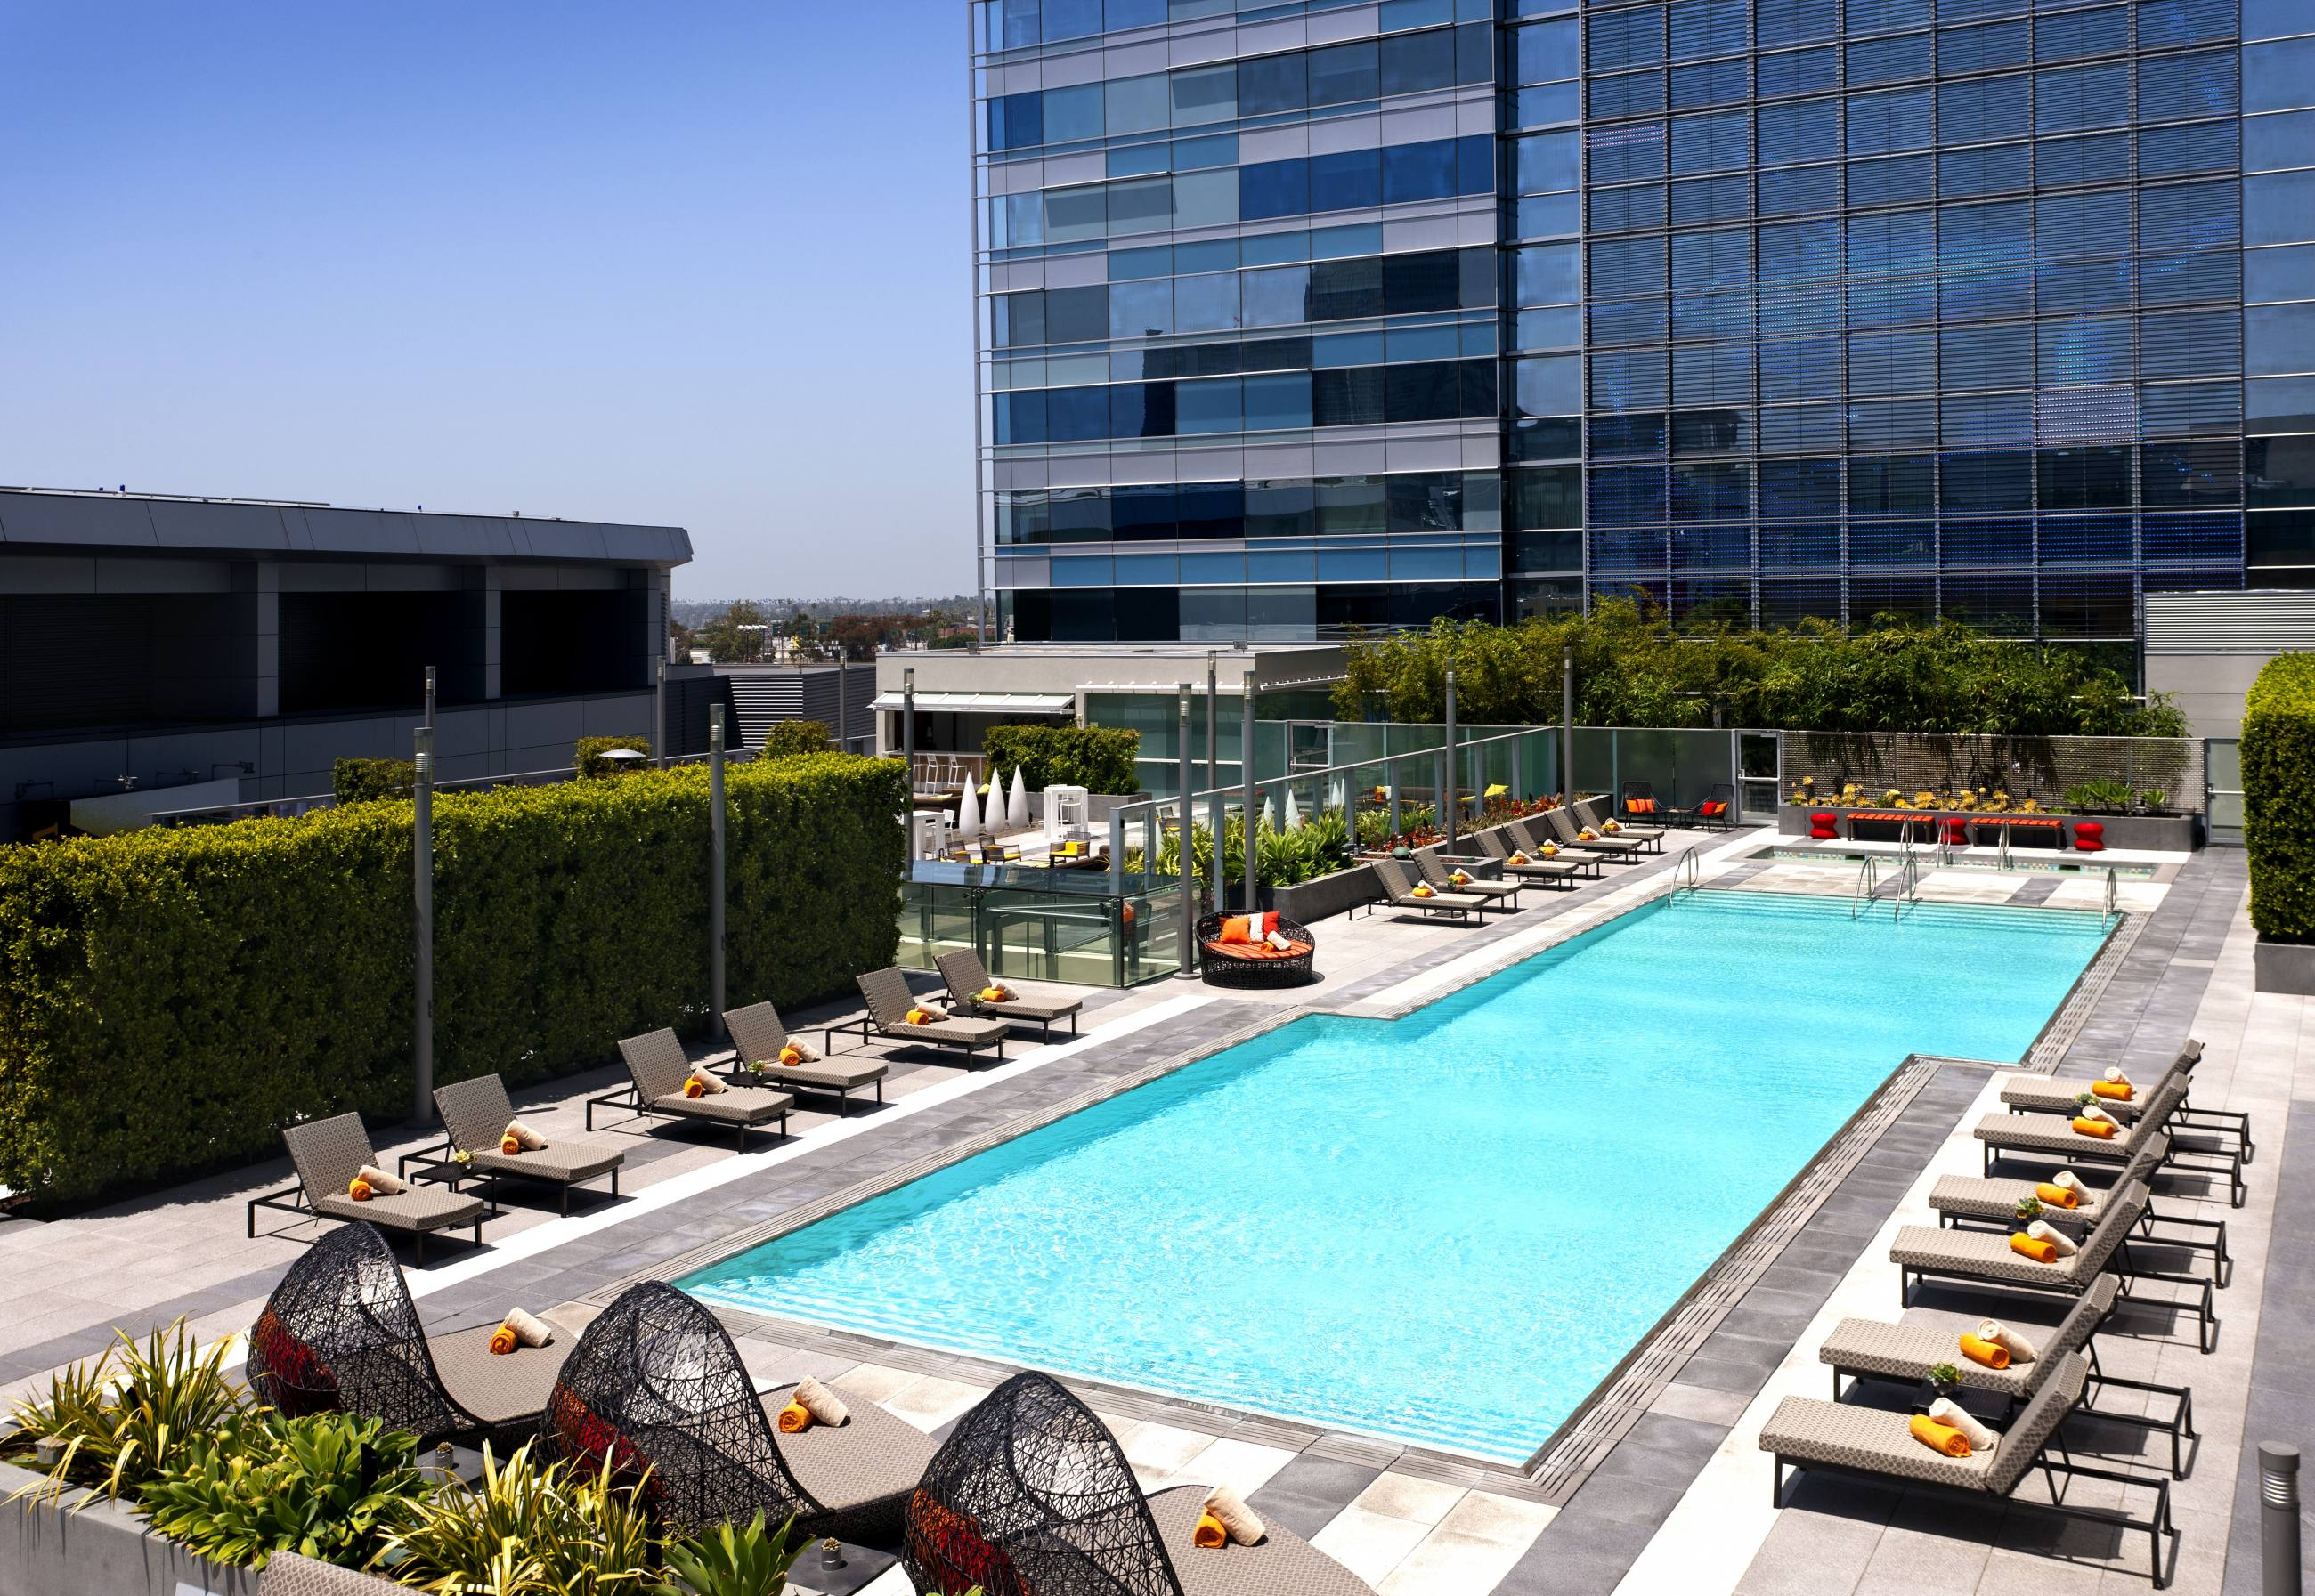 JW-marriott hotel - los angeles event spaces